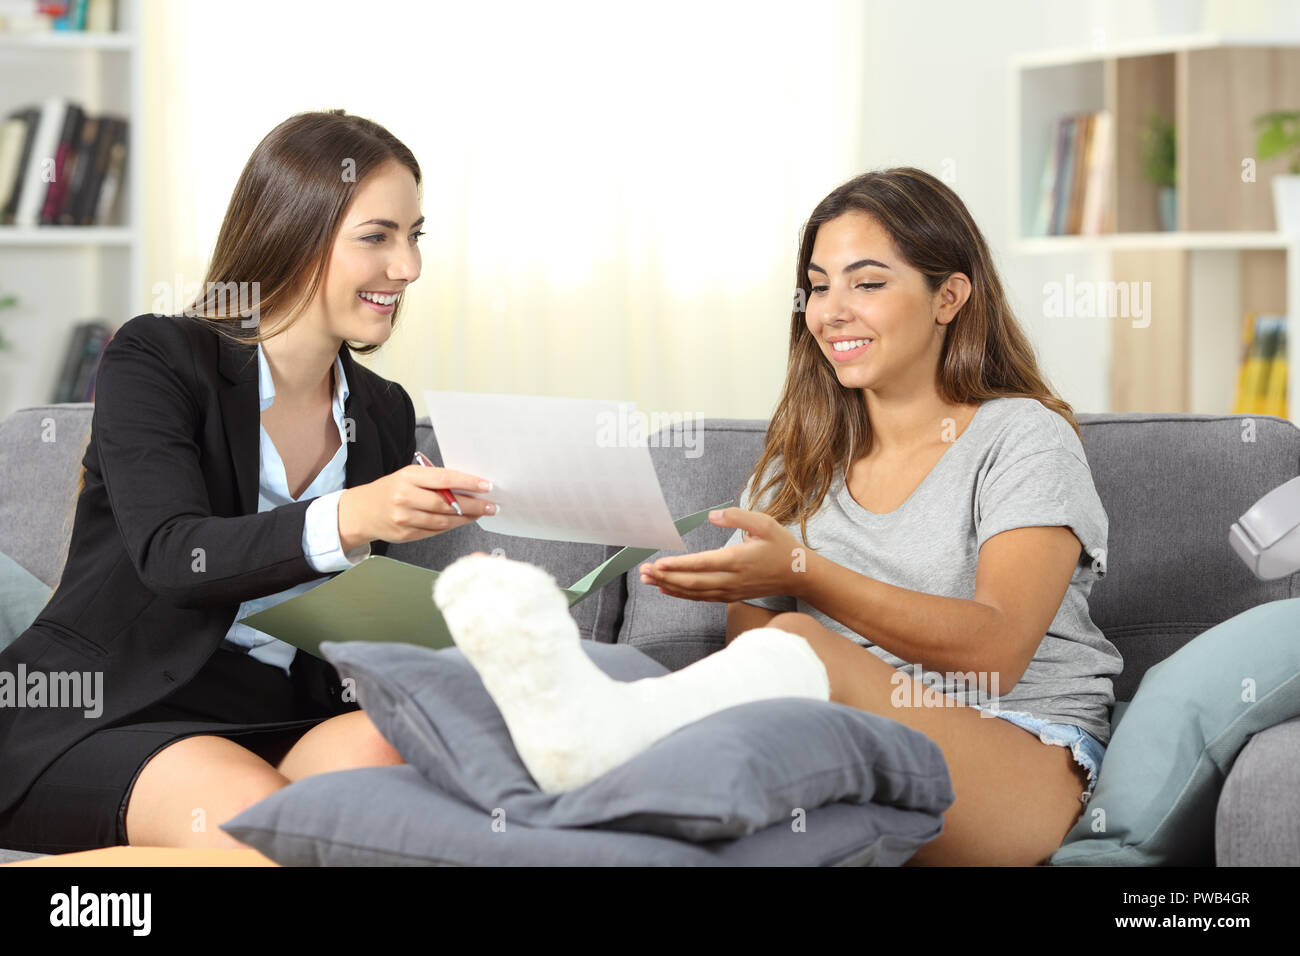 Happy insurance agent giving notification to a disabled girl sitting on a couch at home - Stock Image